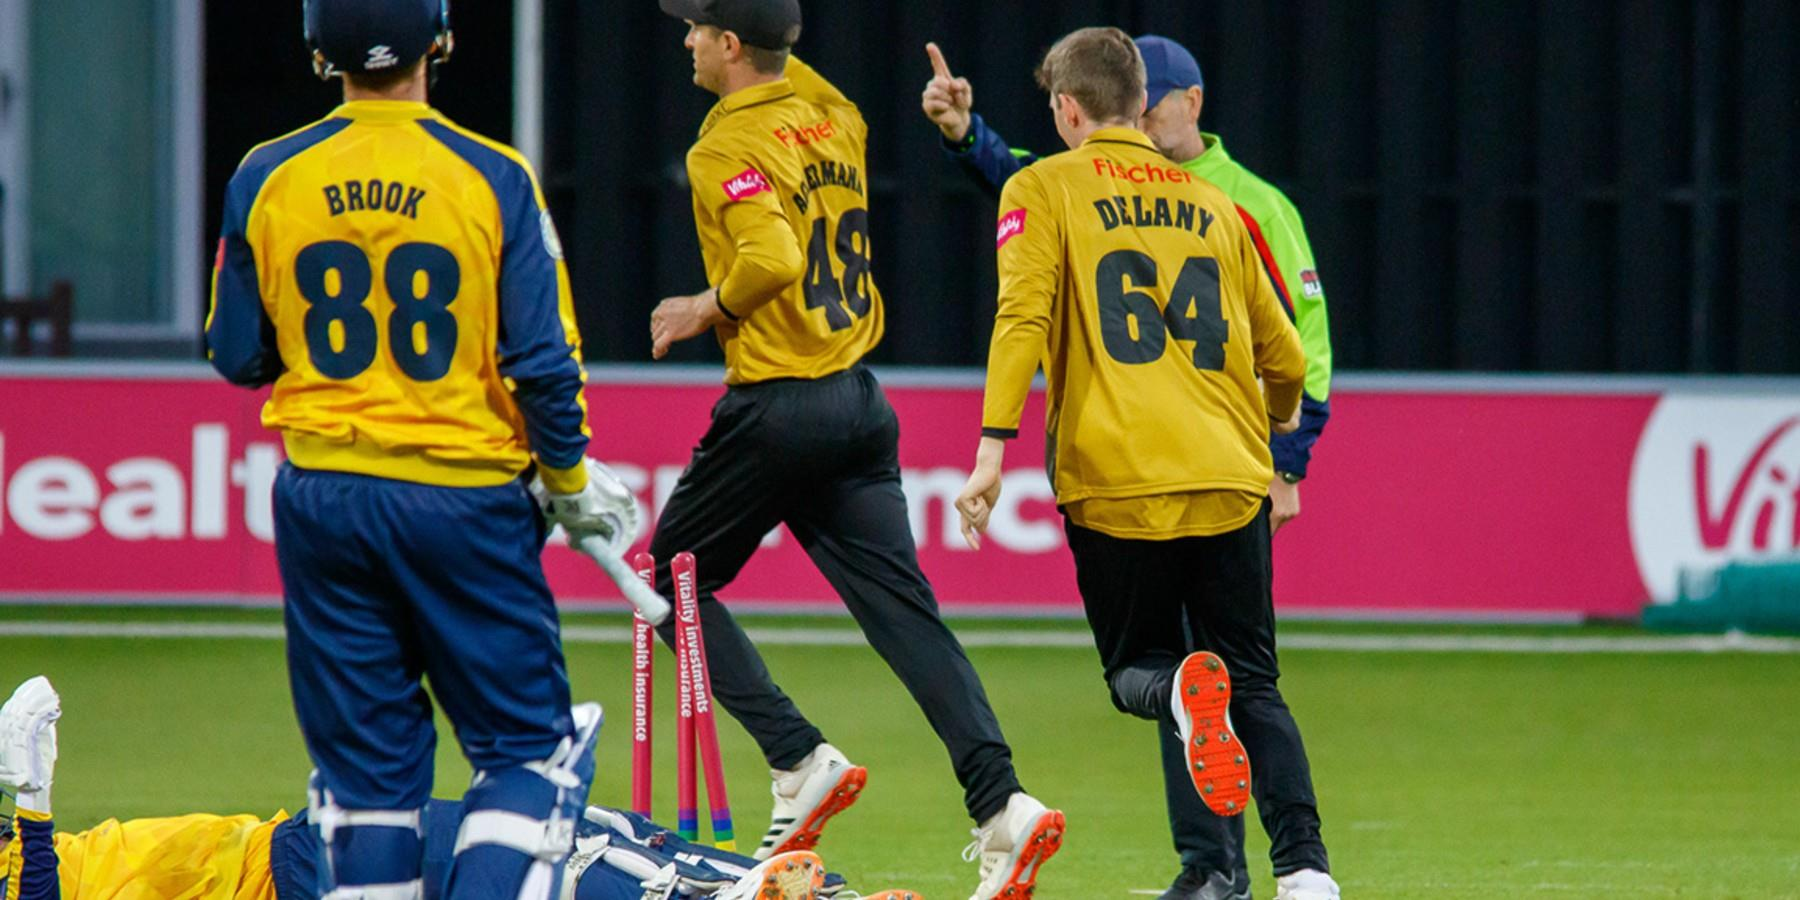 Leicestershire Foxes v Northamptonshire Steelbacks